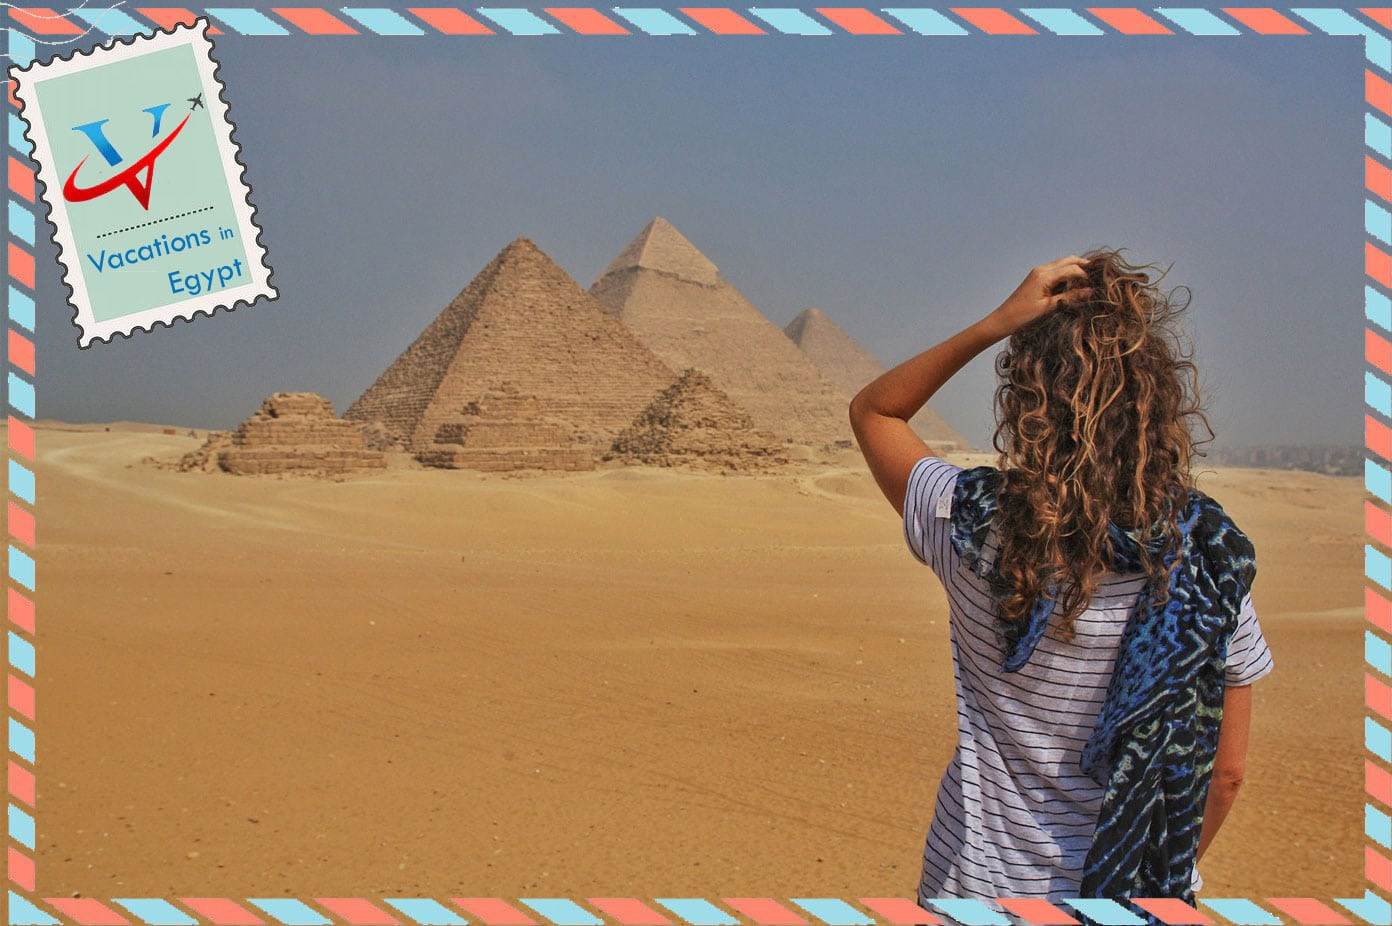 One week in Egypt itinerary